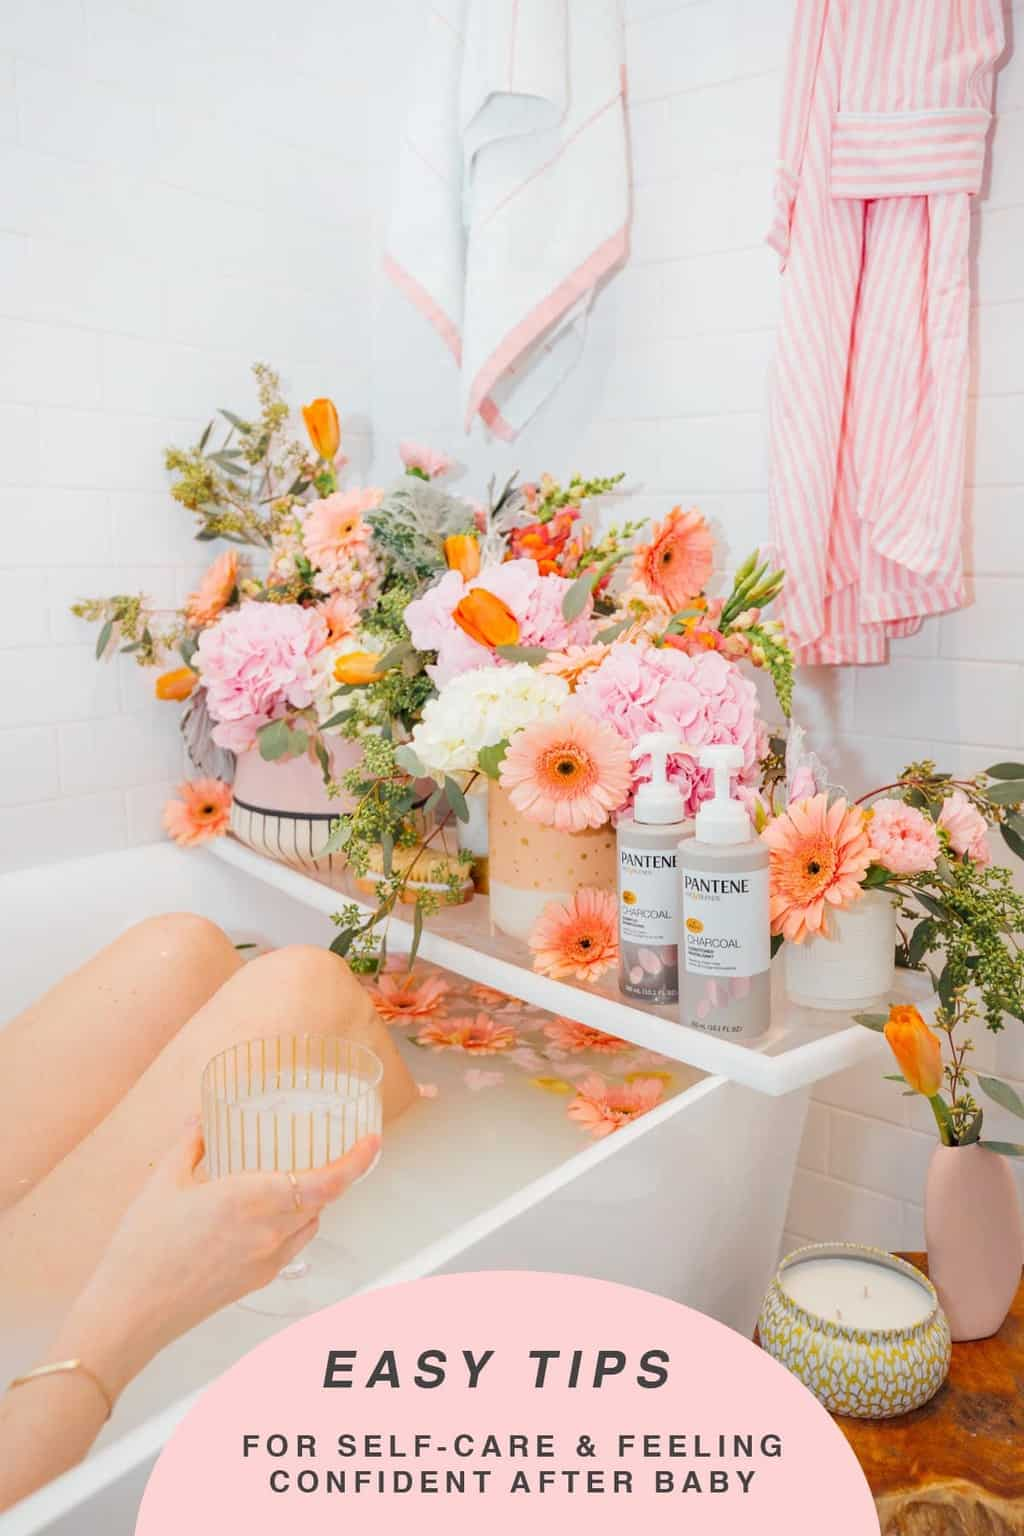 kicking back in a flower milk bath - My Easy Self-Care Tips for Feeling Confident in Yourself (Especially After Baby) - by top Houston lifestyle blogger Ashley Rose of Sugar and Cloth #beauty #tips #selfcare #hair #hairstyles #florals #flowers #showers